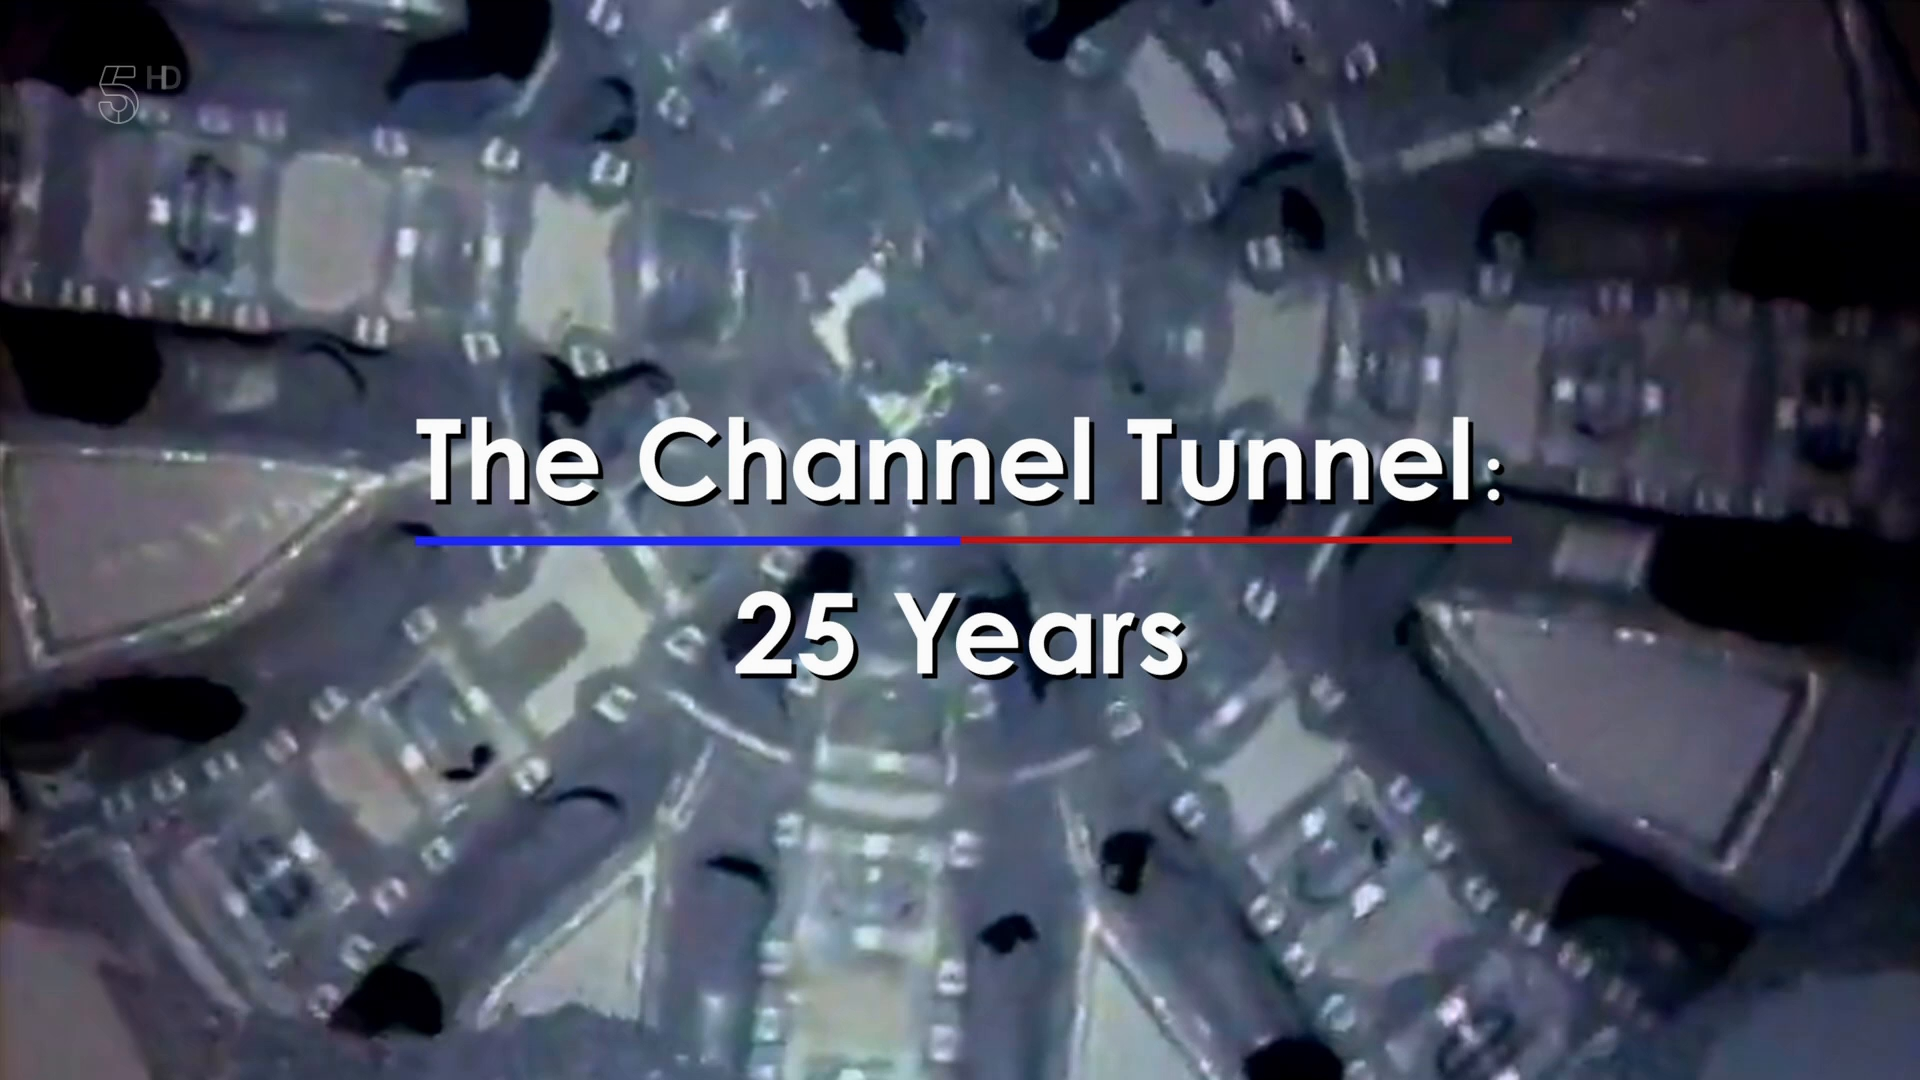 The Channel Tunnel: 25 Years